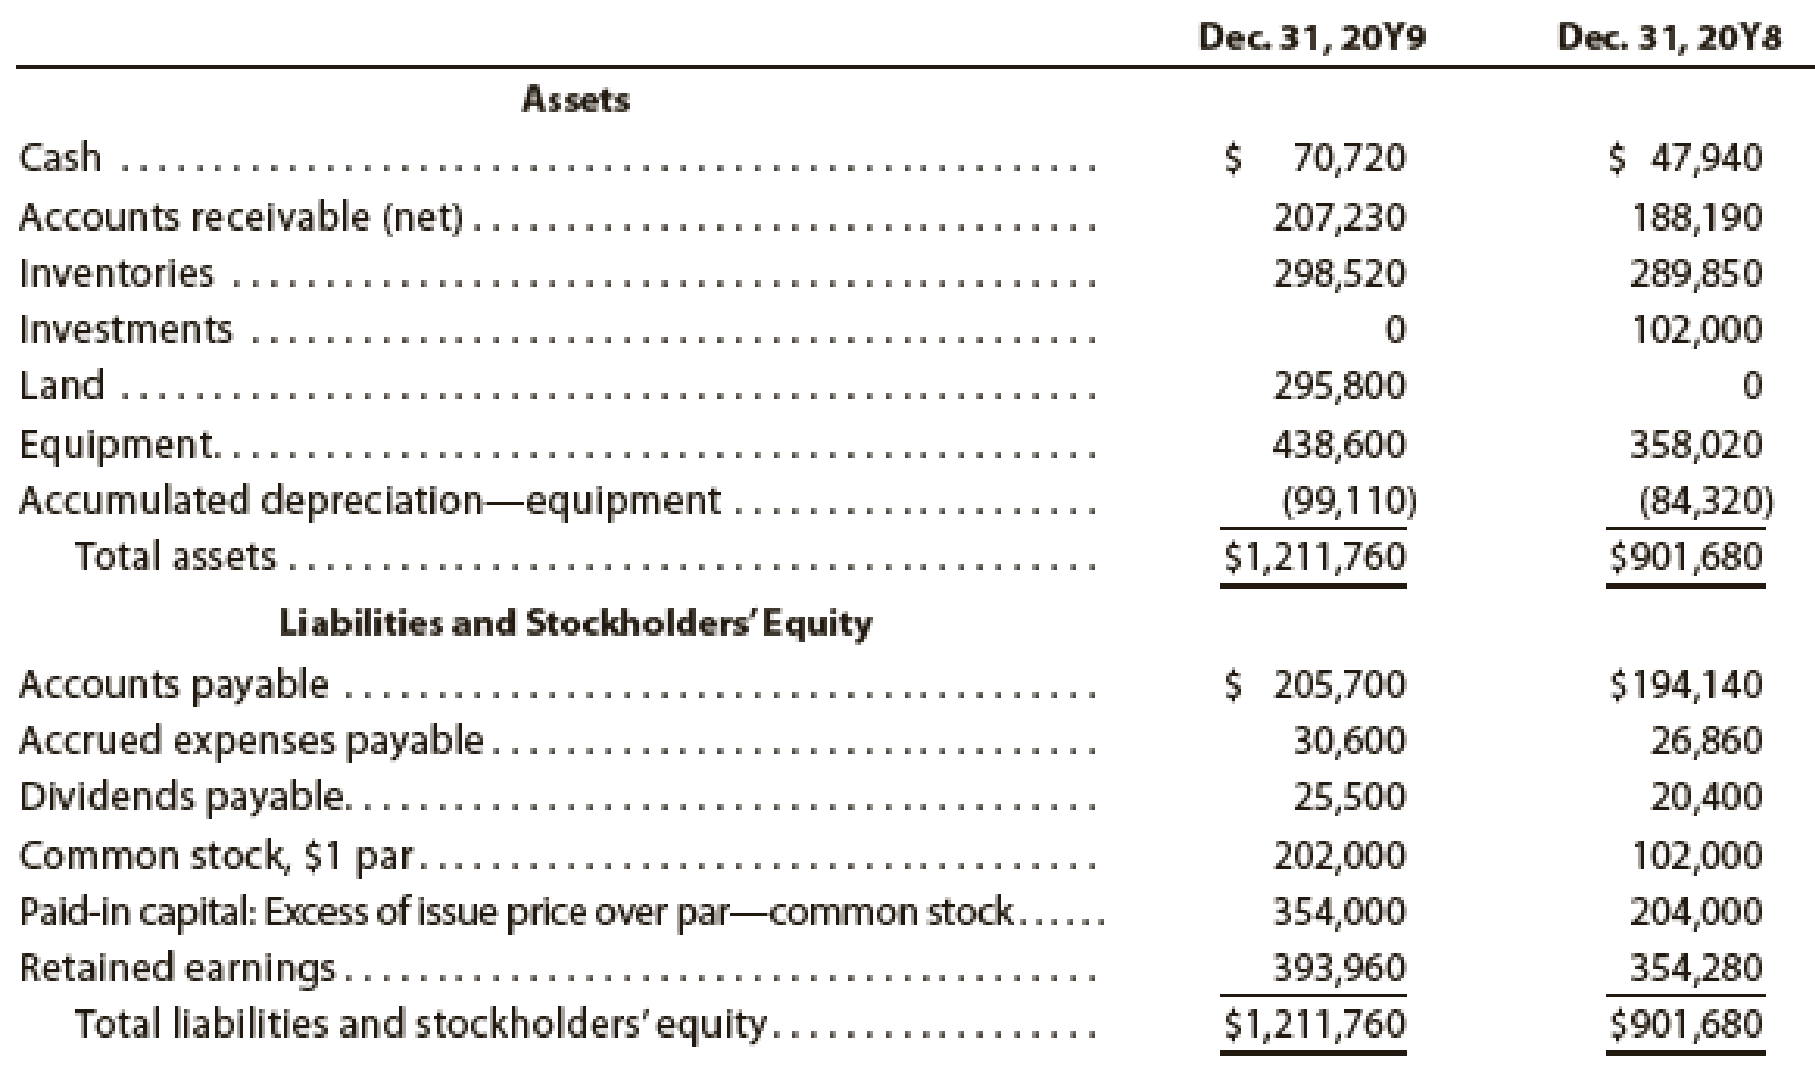 Chapter 16, Problem 5PB, The comparative balance sheet of Merrick Equipment Co. for Dec. 31, 20Y9 and 20Y8, is as follows: , example  1